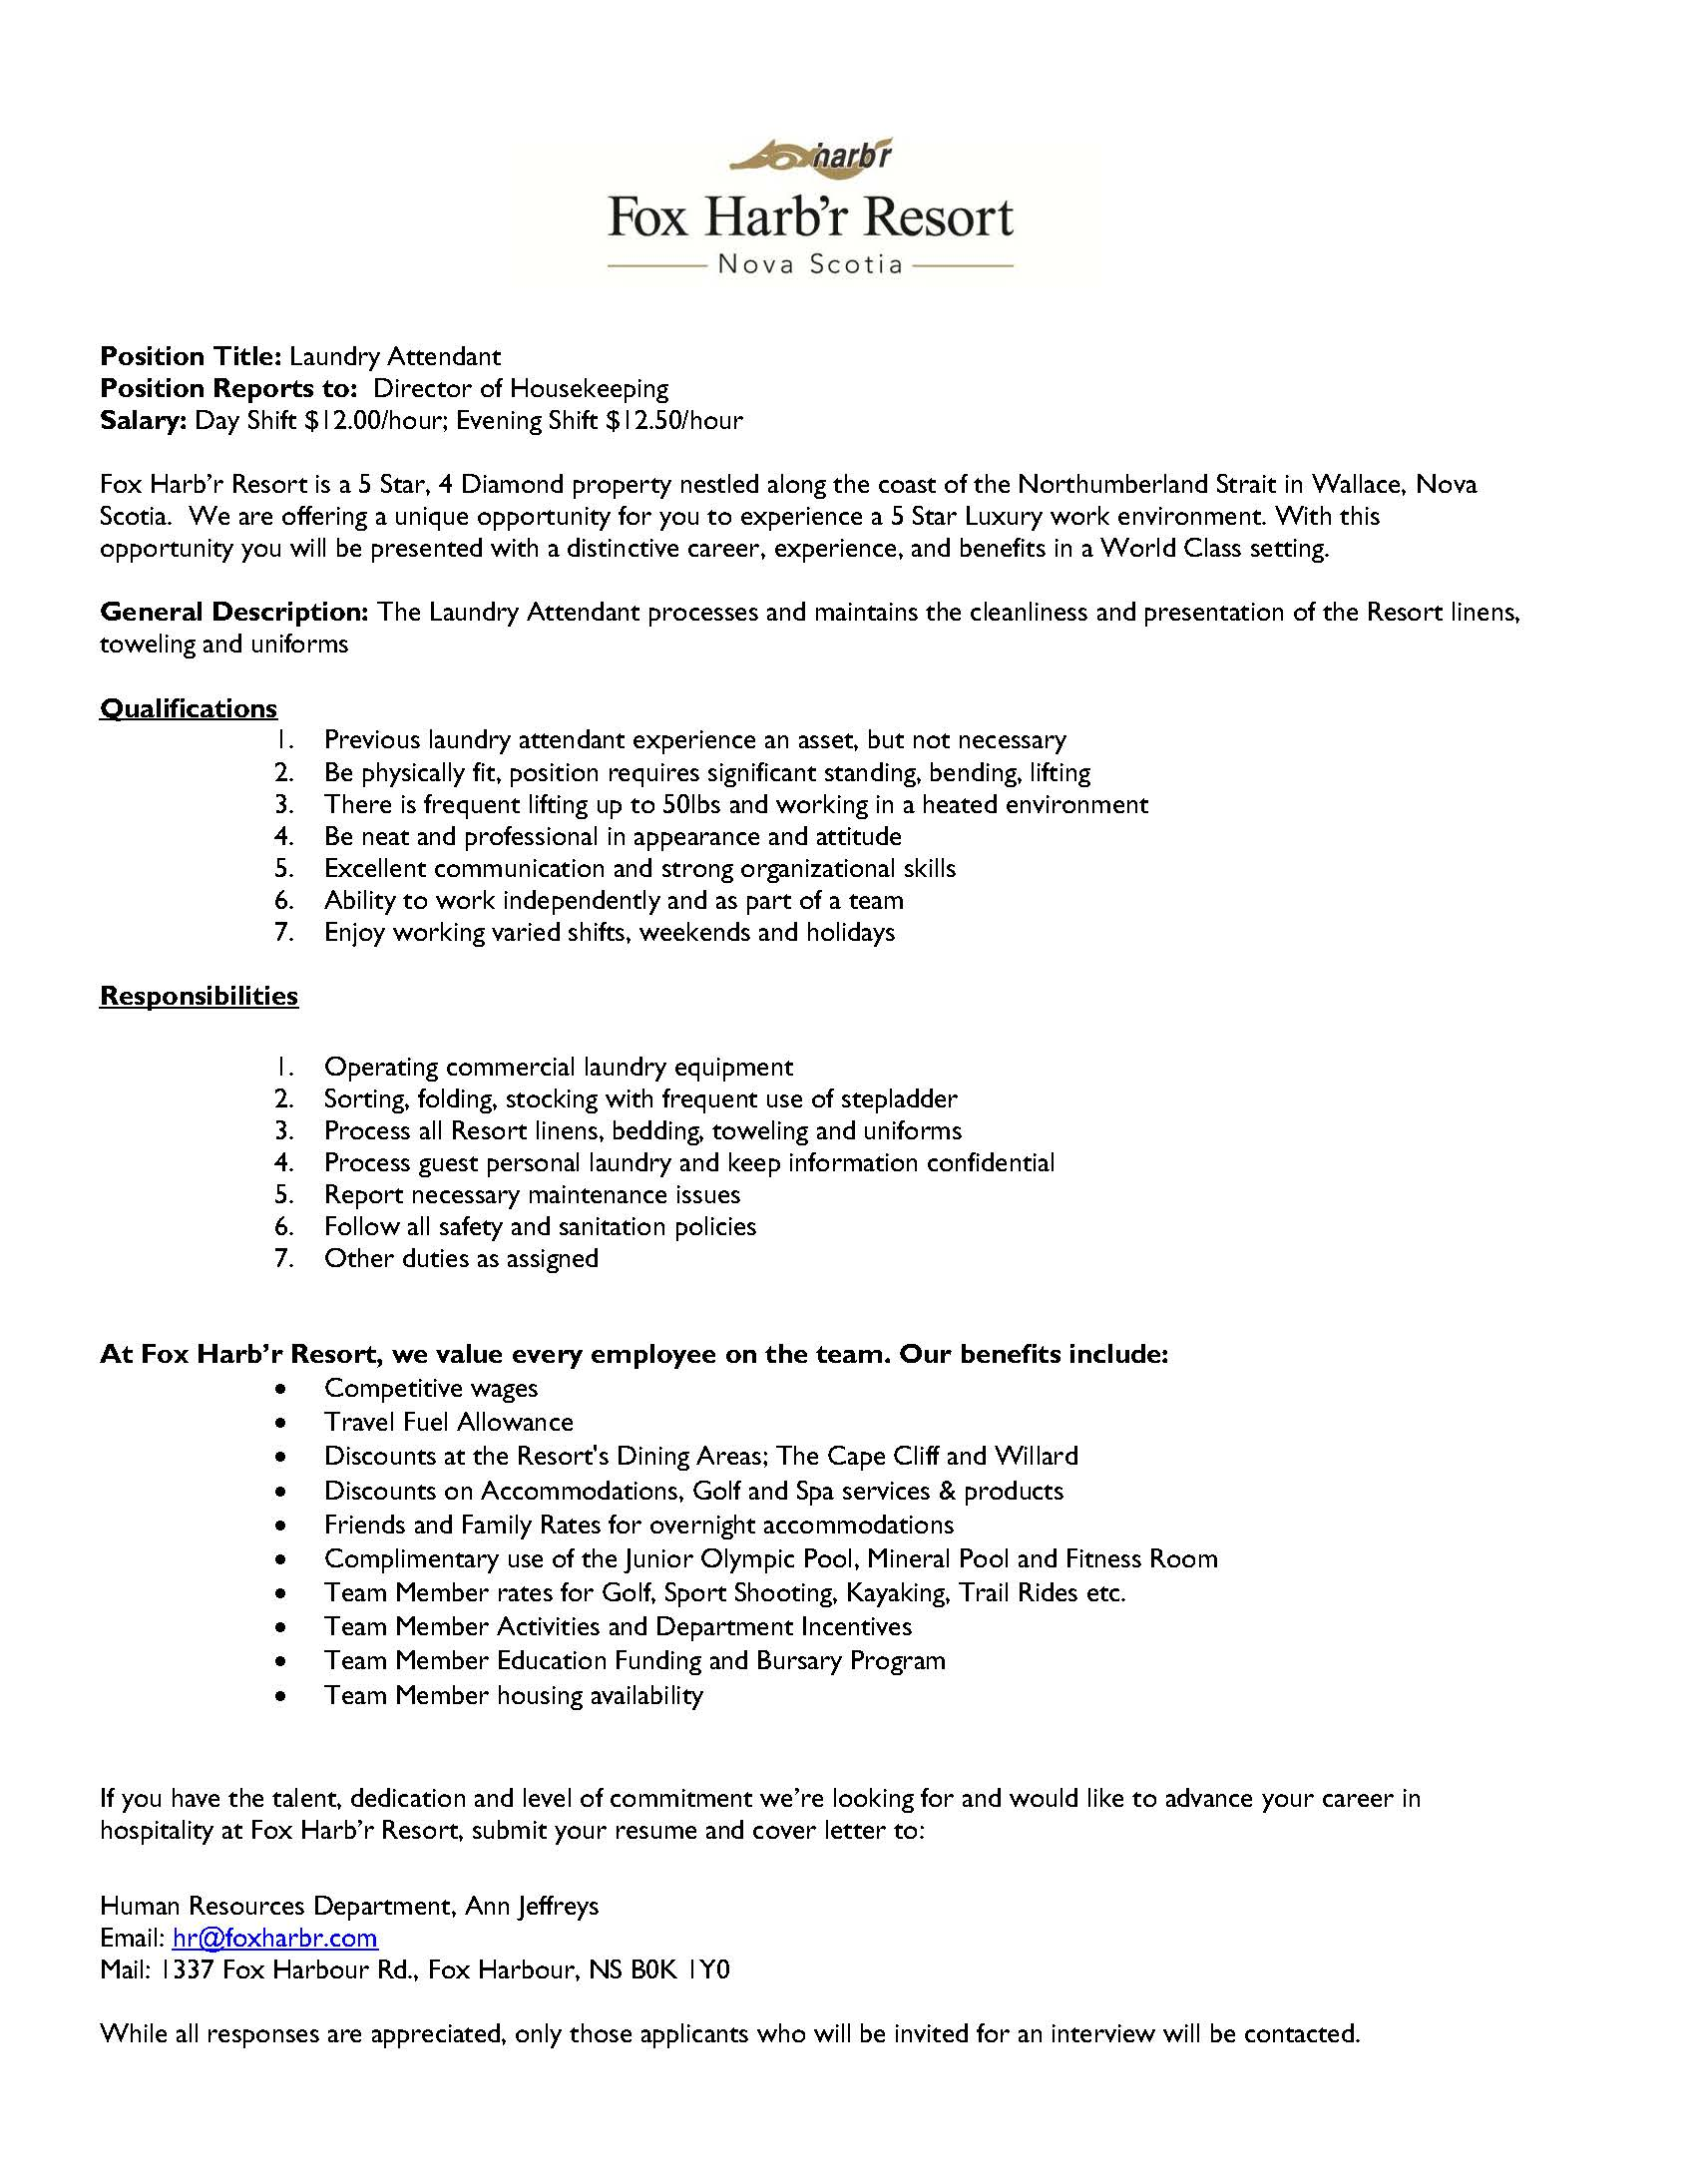 Fox Harb\'r Resort - Laundry Attendant | Opportunity Place Resource ...